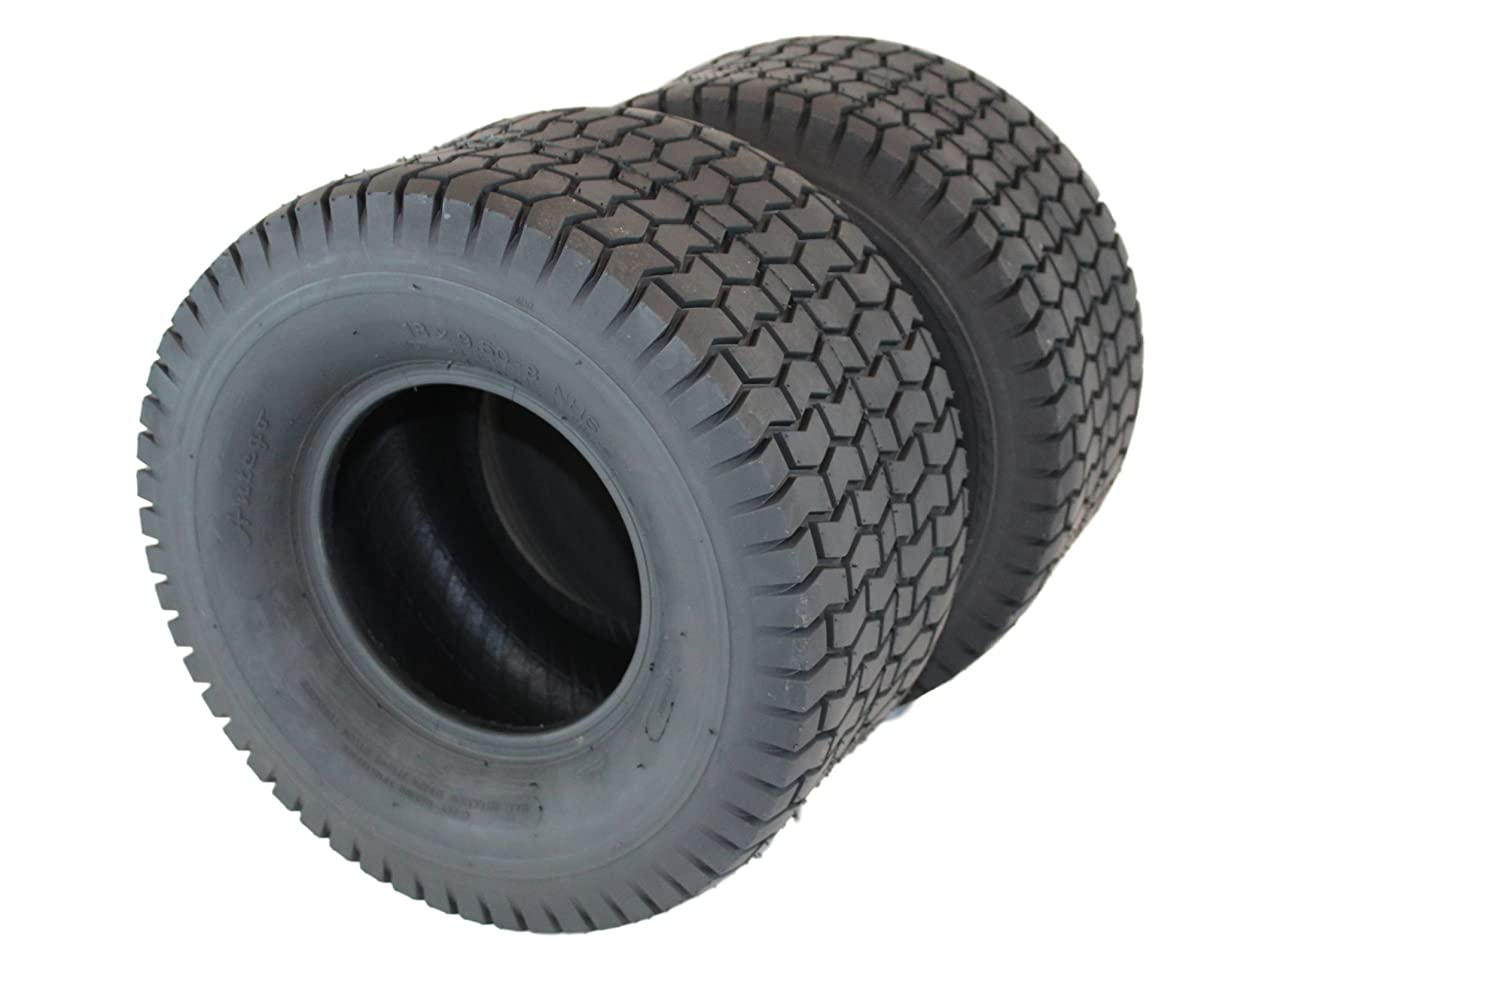 Antego Set of Two 18x9.50-8 4 Ply Turf Tire for Lawn & Garden Mower (2) 18x9.5-8